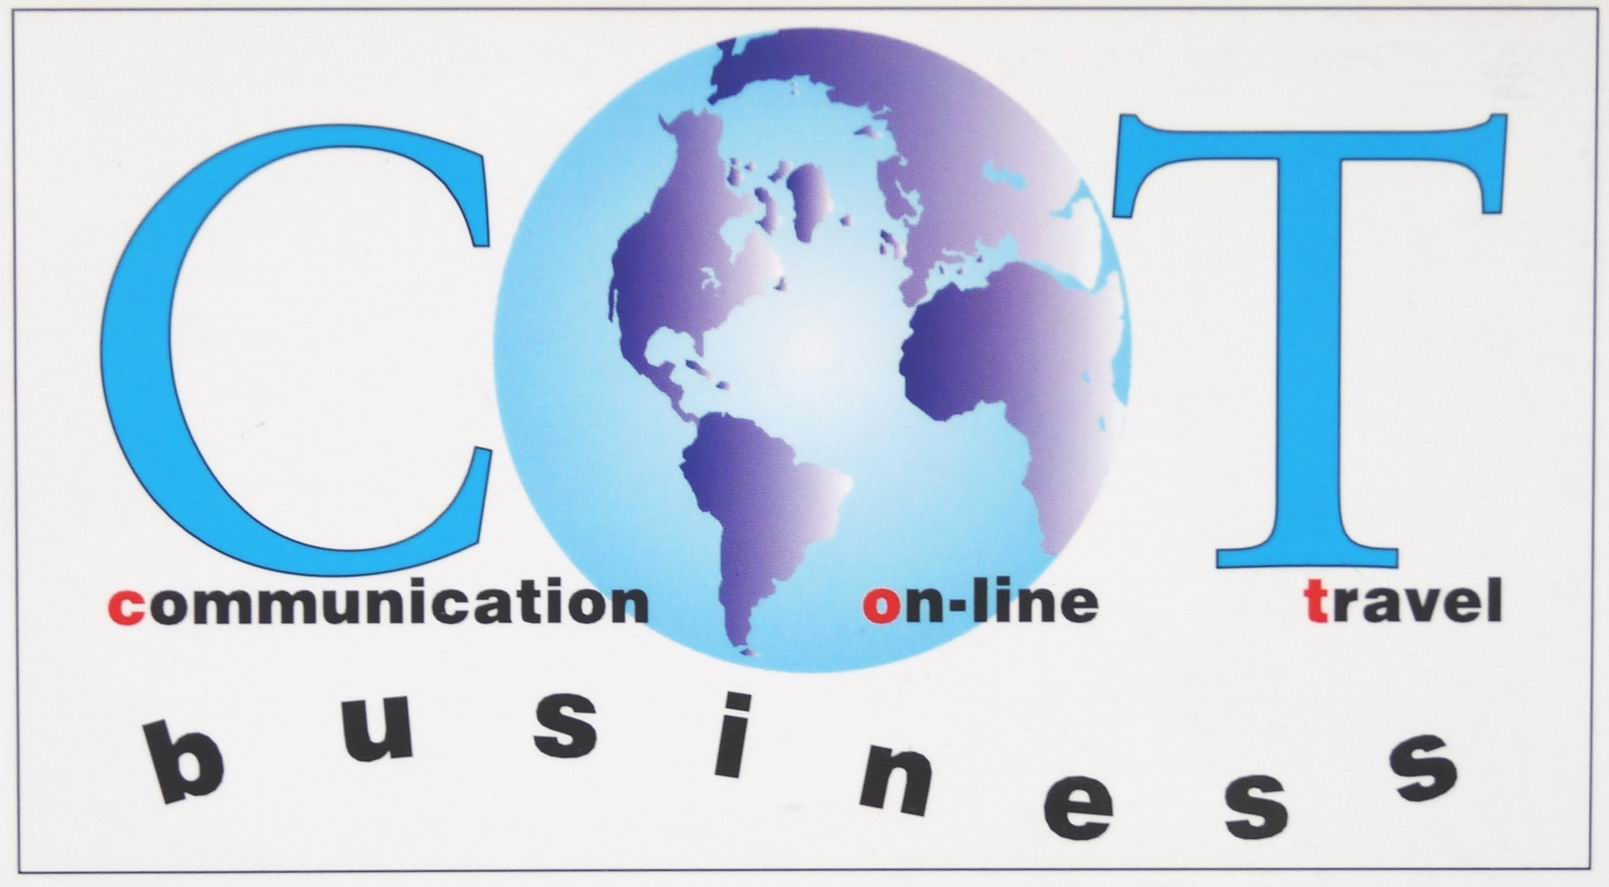 cot-business_0